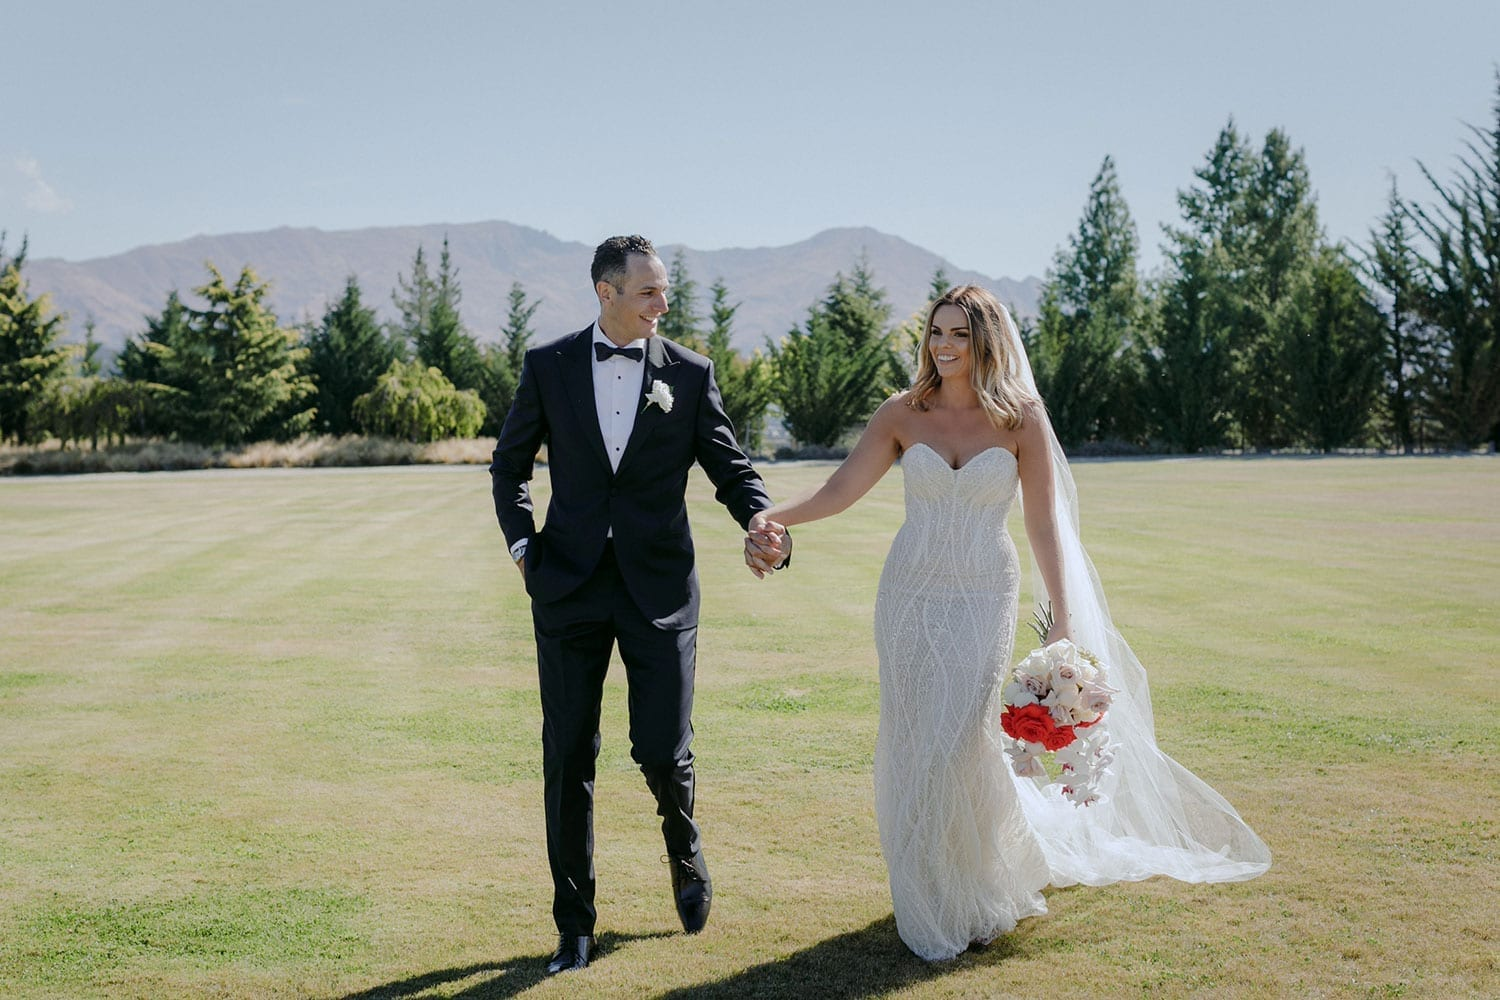 Vinka Design Features Real Weddings - bride in custom made gown, a combination of our Indi wedding dress with added beading appliqued and sewn by hand, over the top of a nude semi sheer base. Walking with groom full length